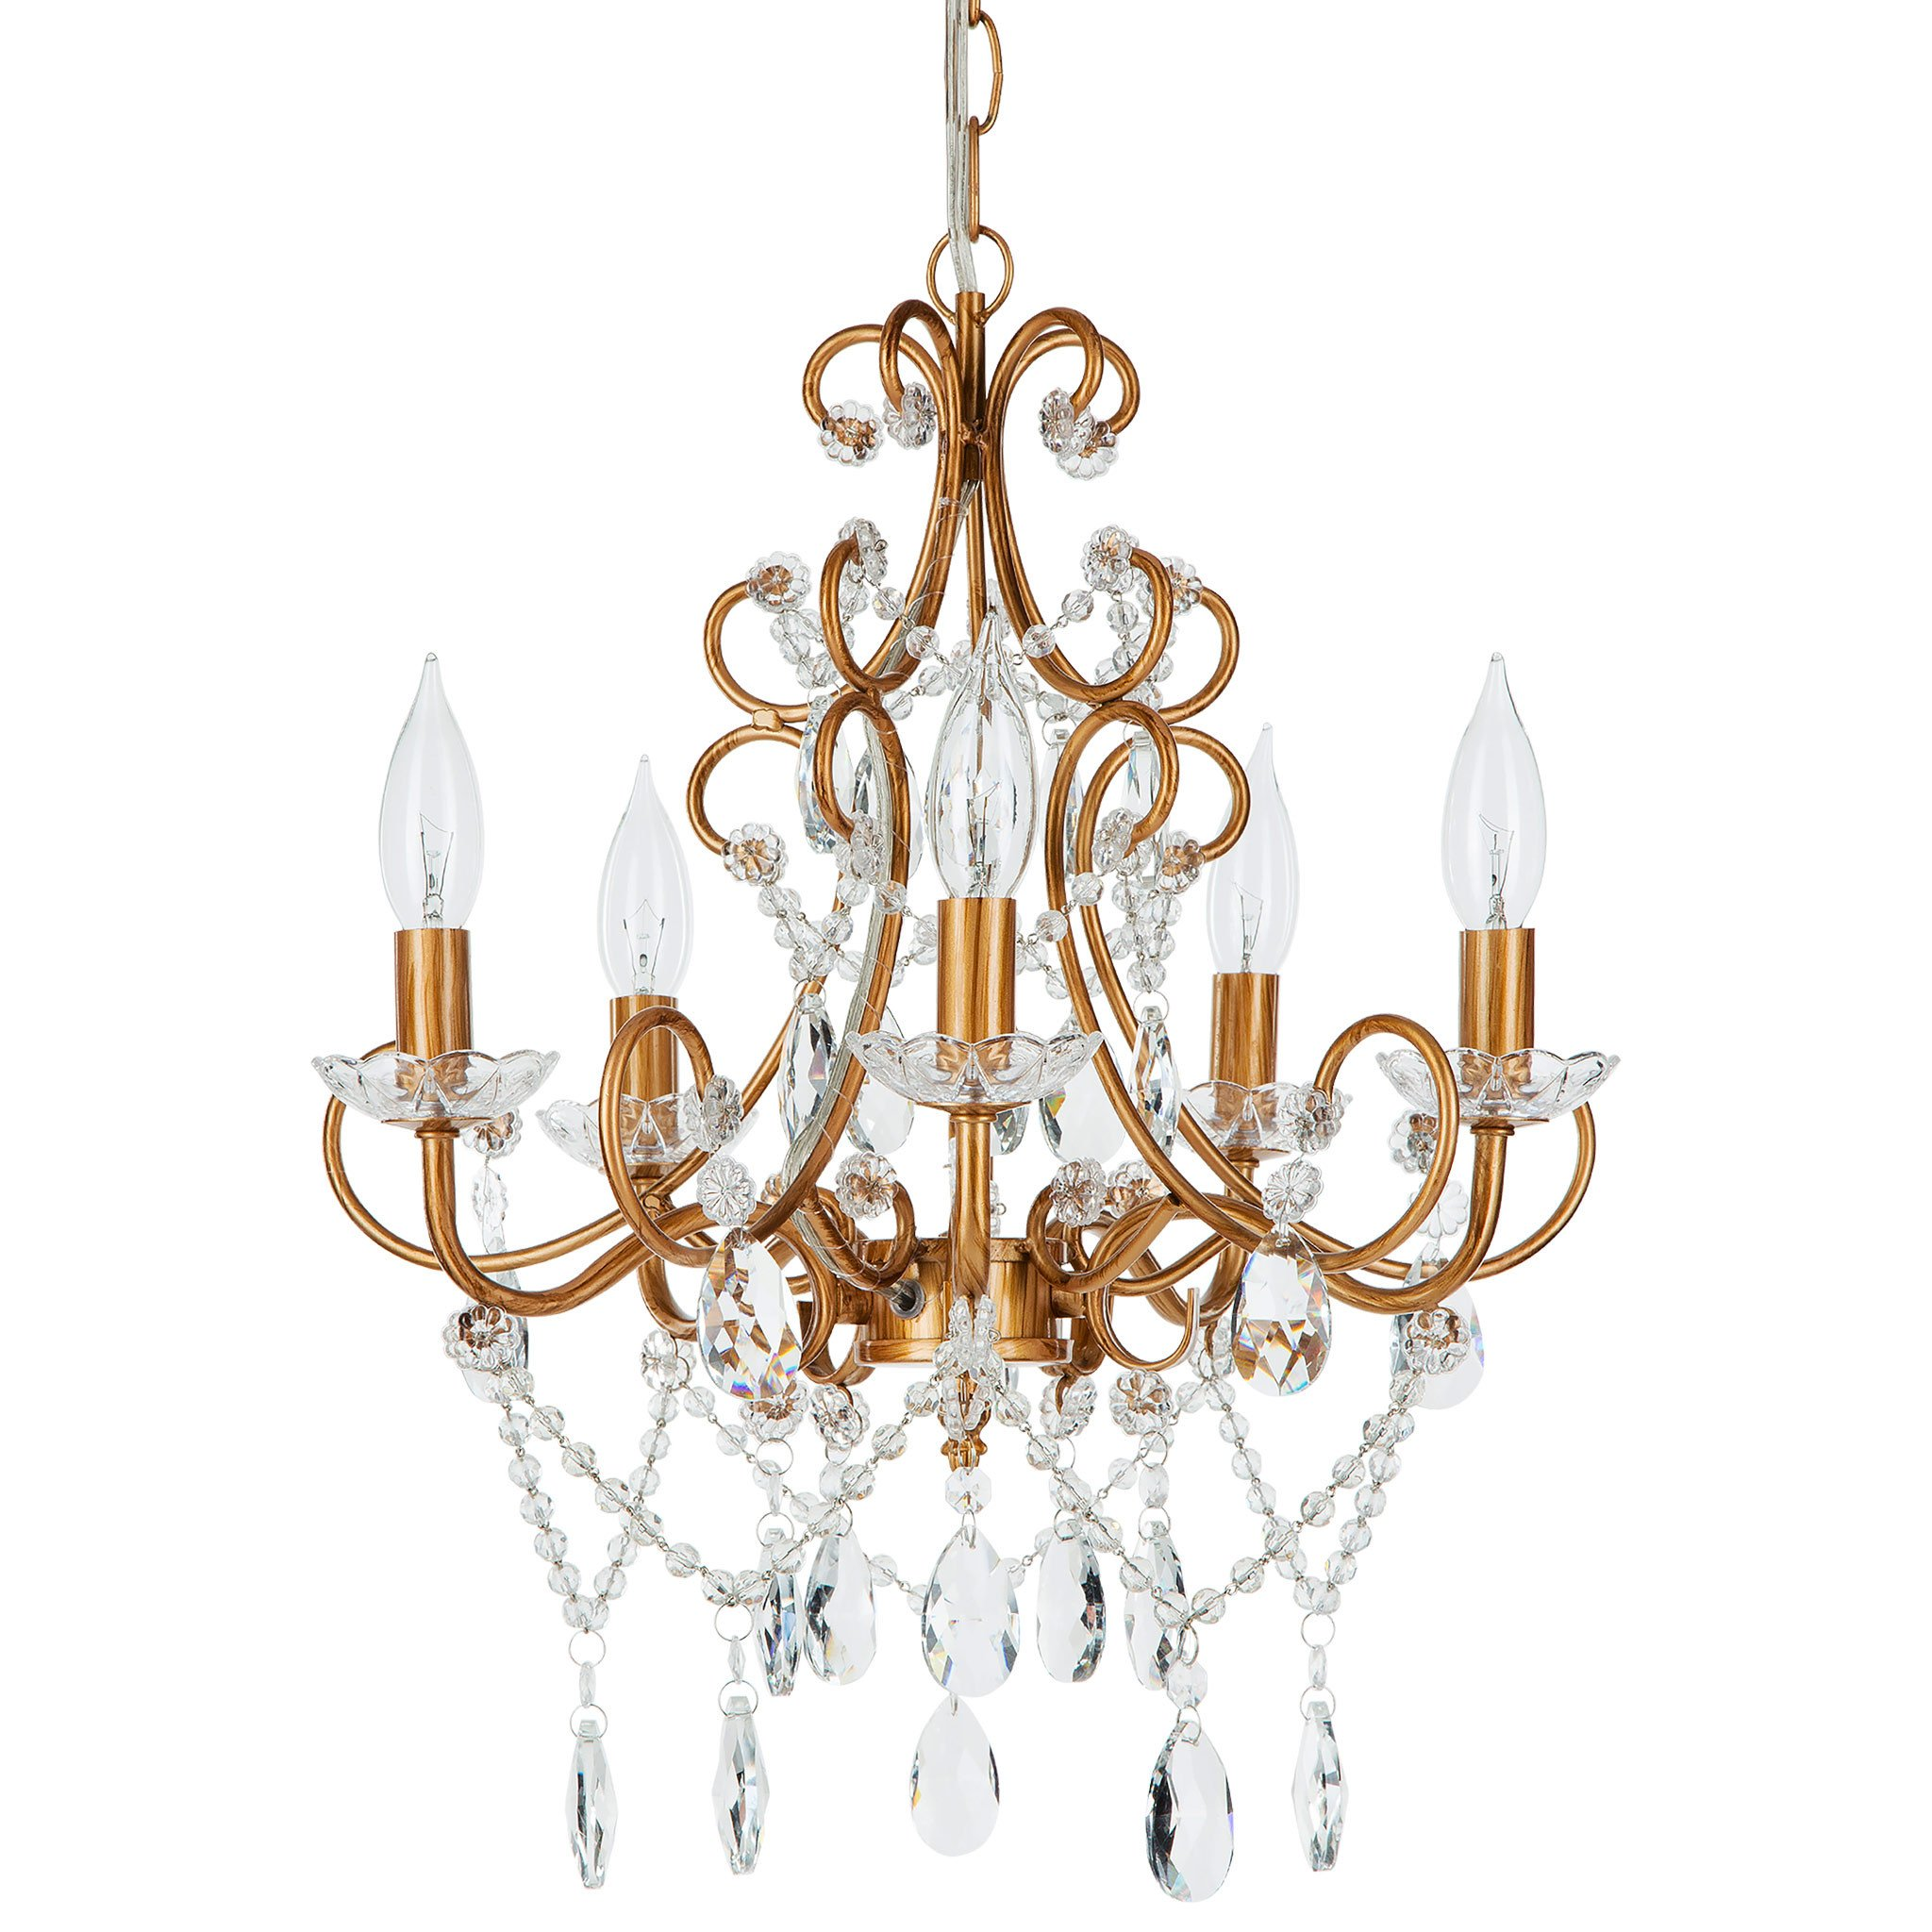 Amalfi Decor 5 Light Classic Crystal Plug-In Chandelier (Gold) | H | Wrought Iron Frame with Glass Crystals by